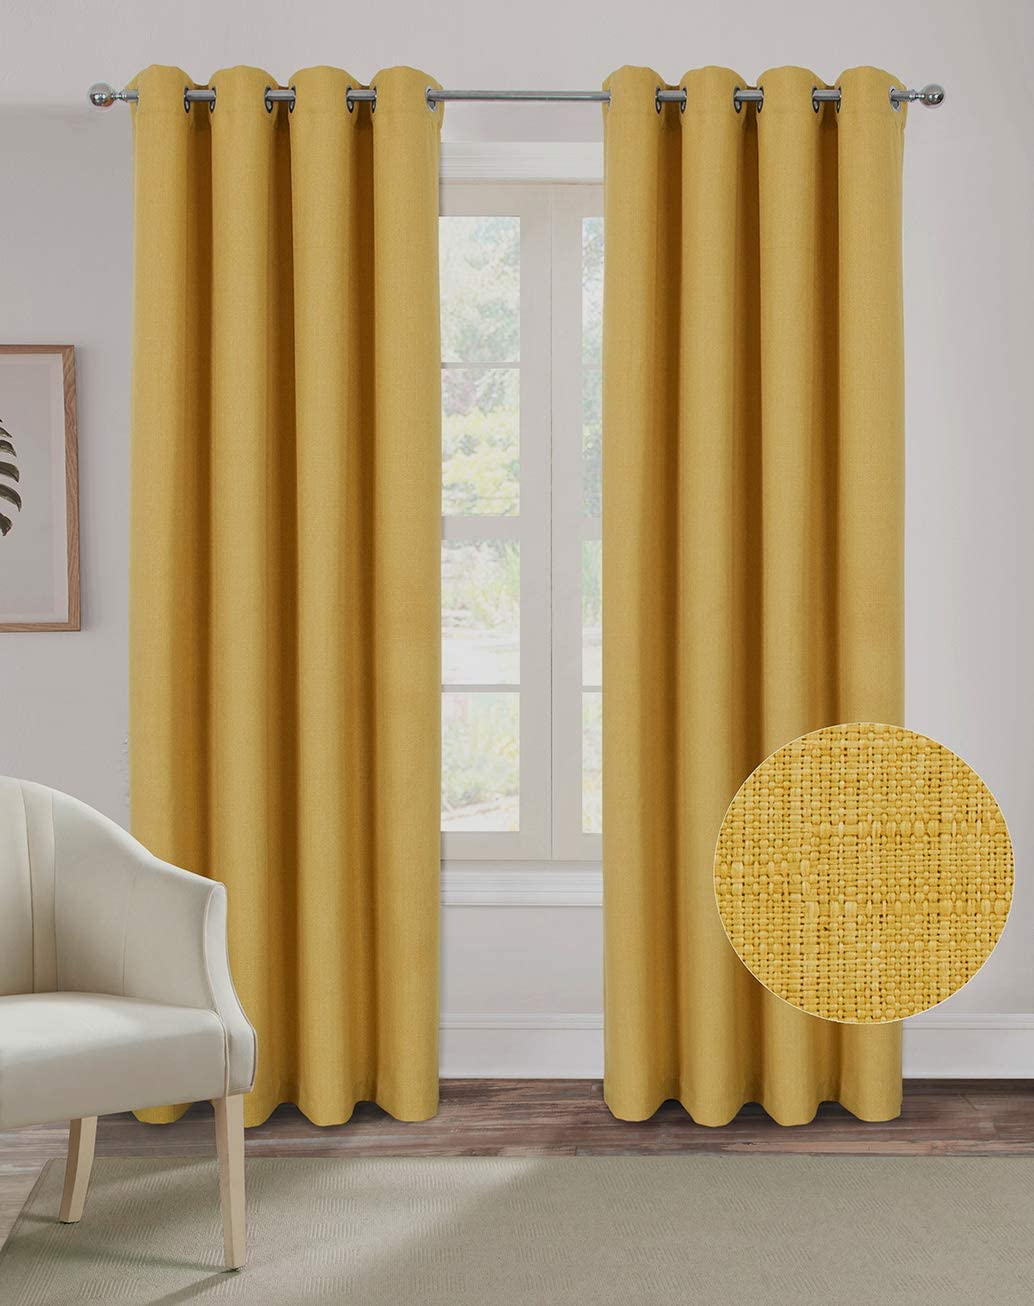 Alexandra Cole Faux Linen Curtains for Living Room Bedroom Textured Curtains 108 Inch Length Burlap Window Curtains 2 Panels Yellow